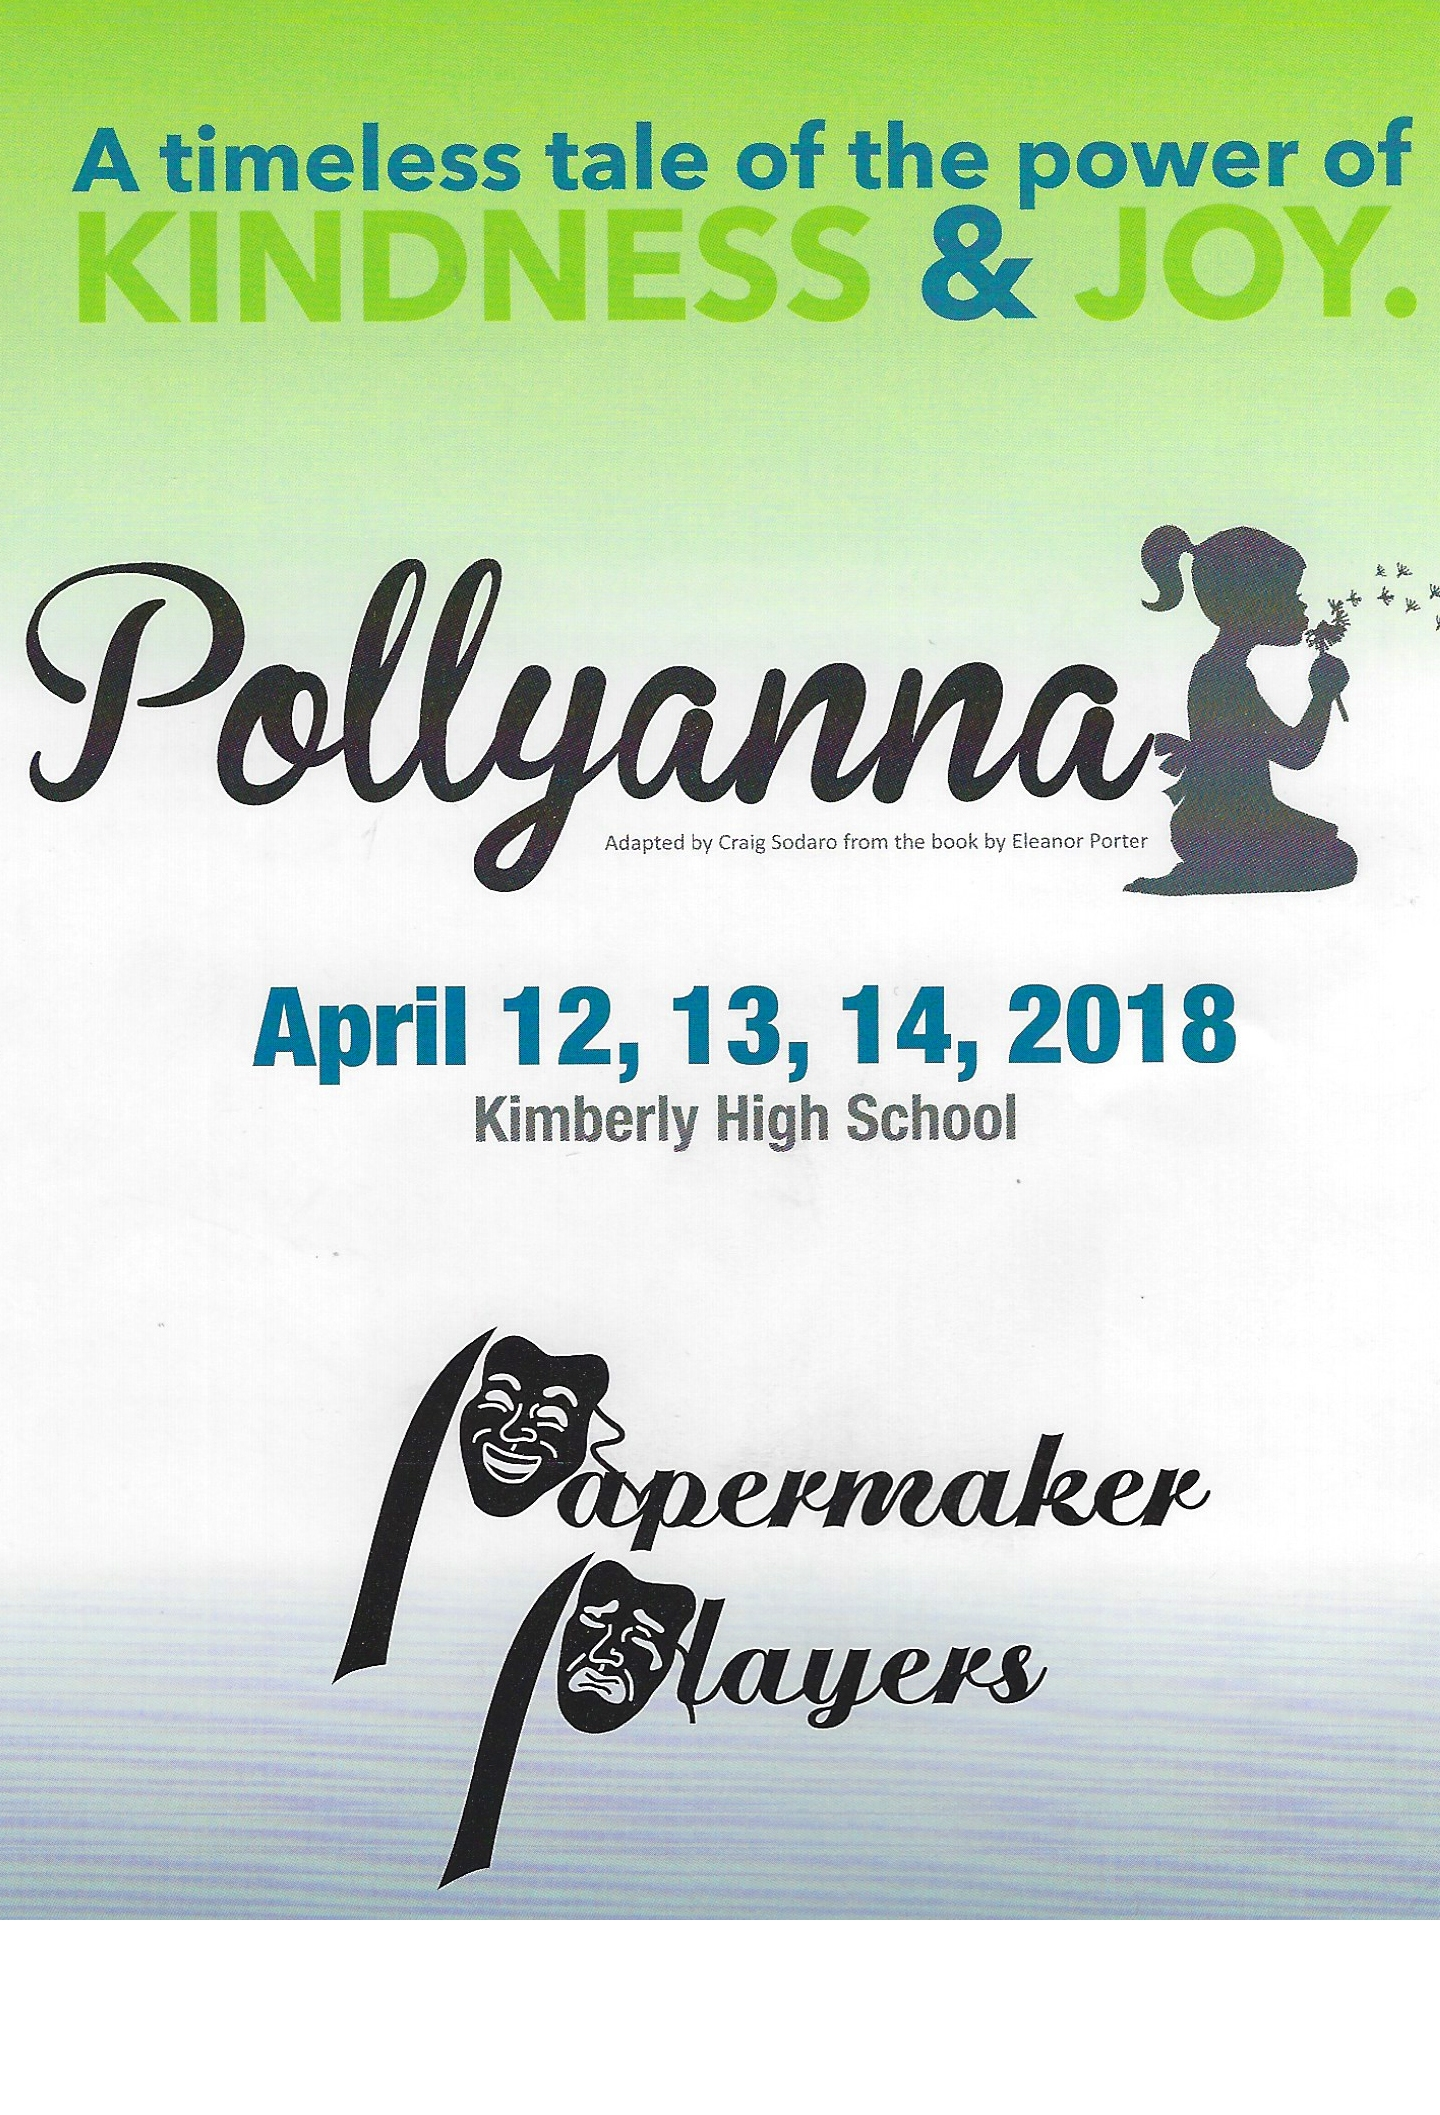 Papermaker Players Family Theatre Pollyanna cover_1523621019735.jpg.jpg